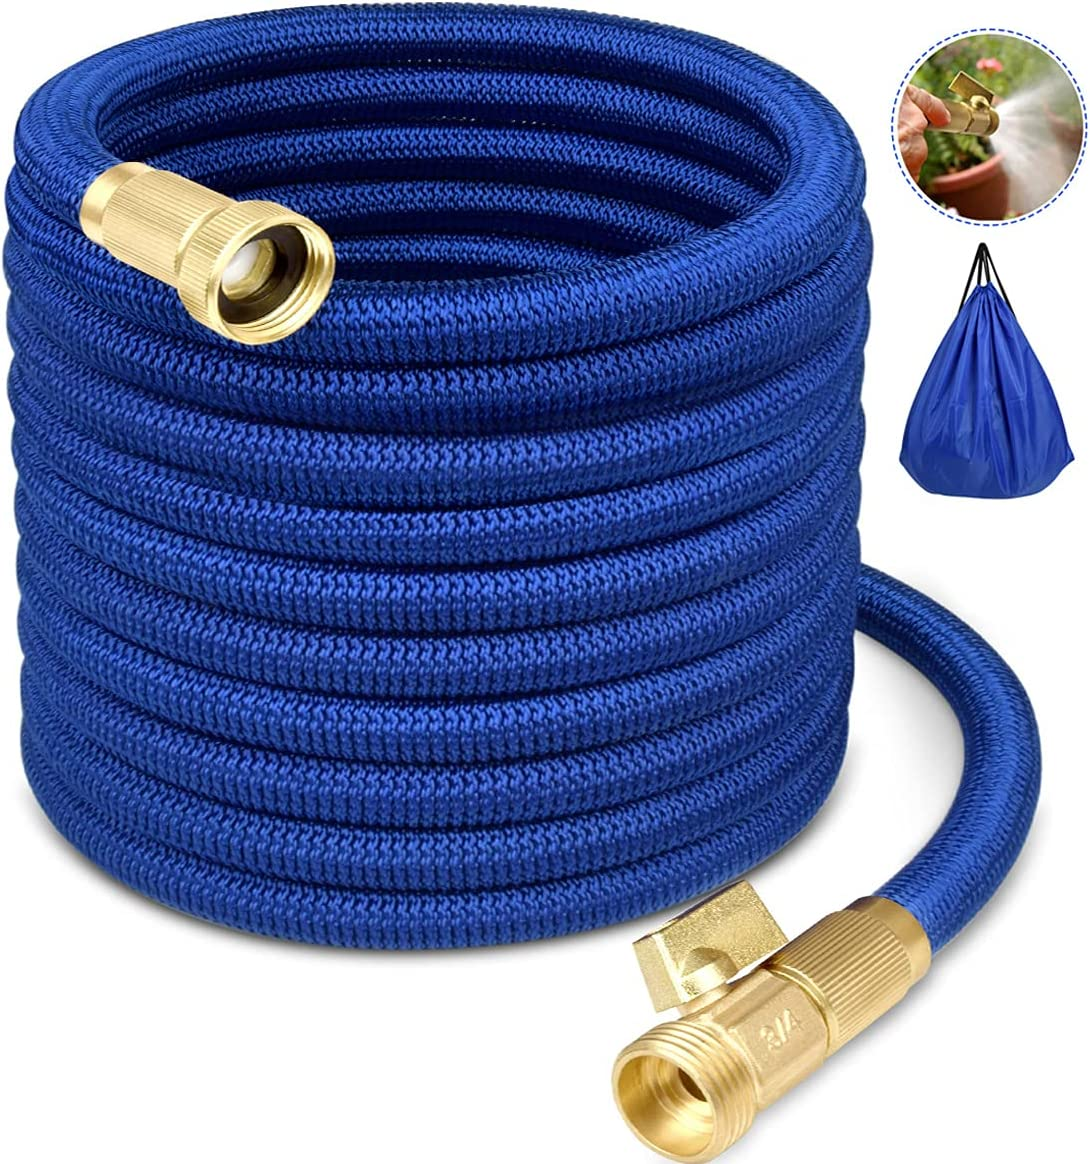 Garden Hose Water Hose Expandable Garden Hose Flexible Garden Hose 50FT No-Kink Flexible Expanding Water Hose with 4 Layer Latex Core, 3/4 Solid Brass Fittings for Watering/Washing/Cleaning